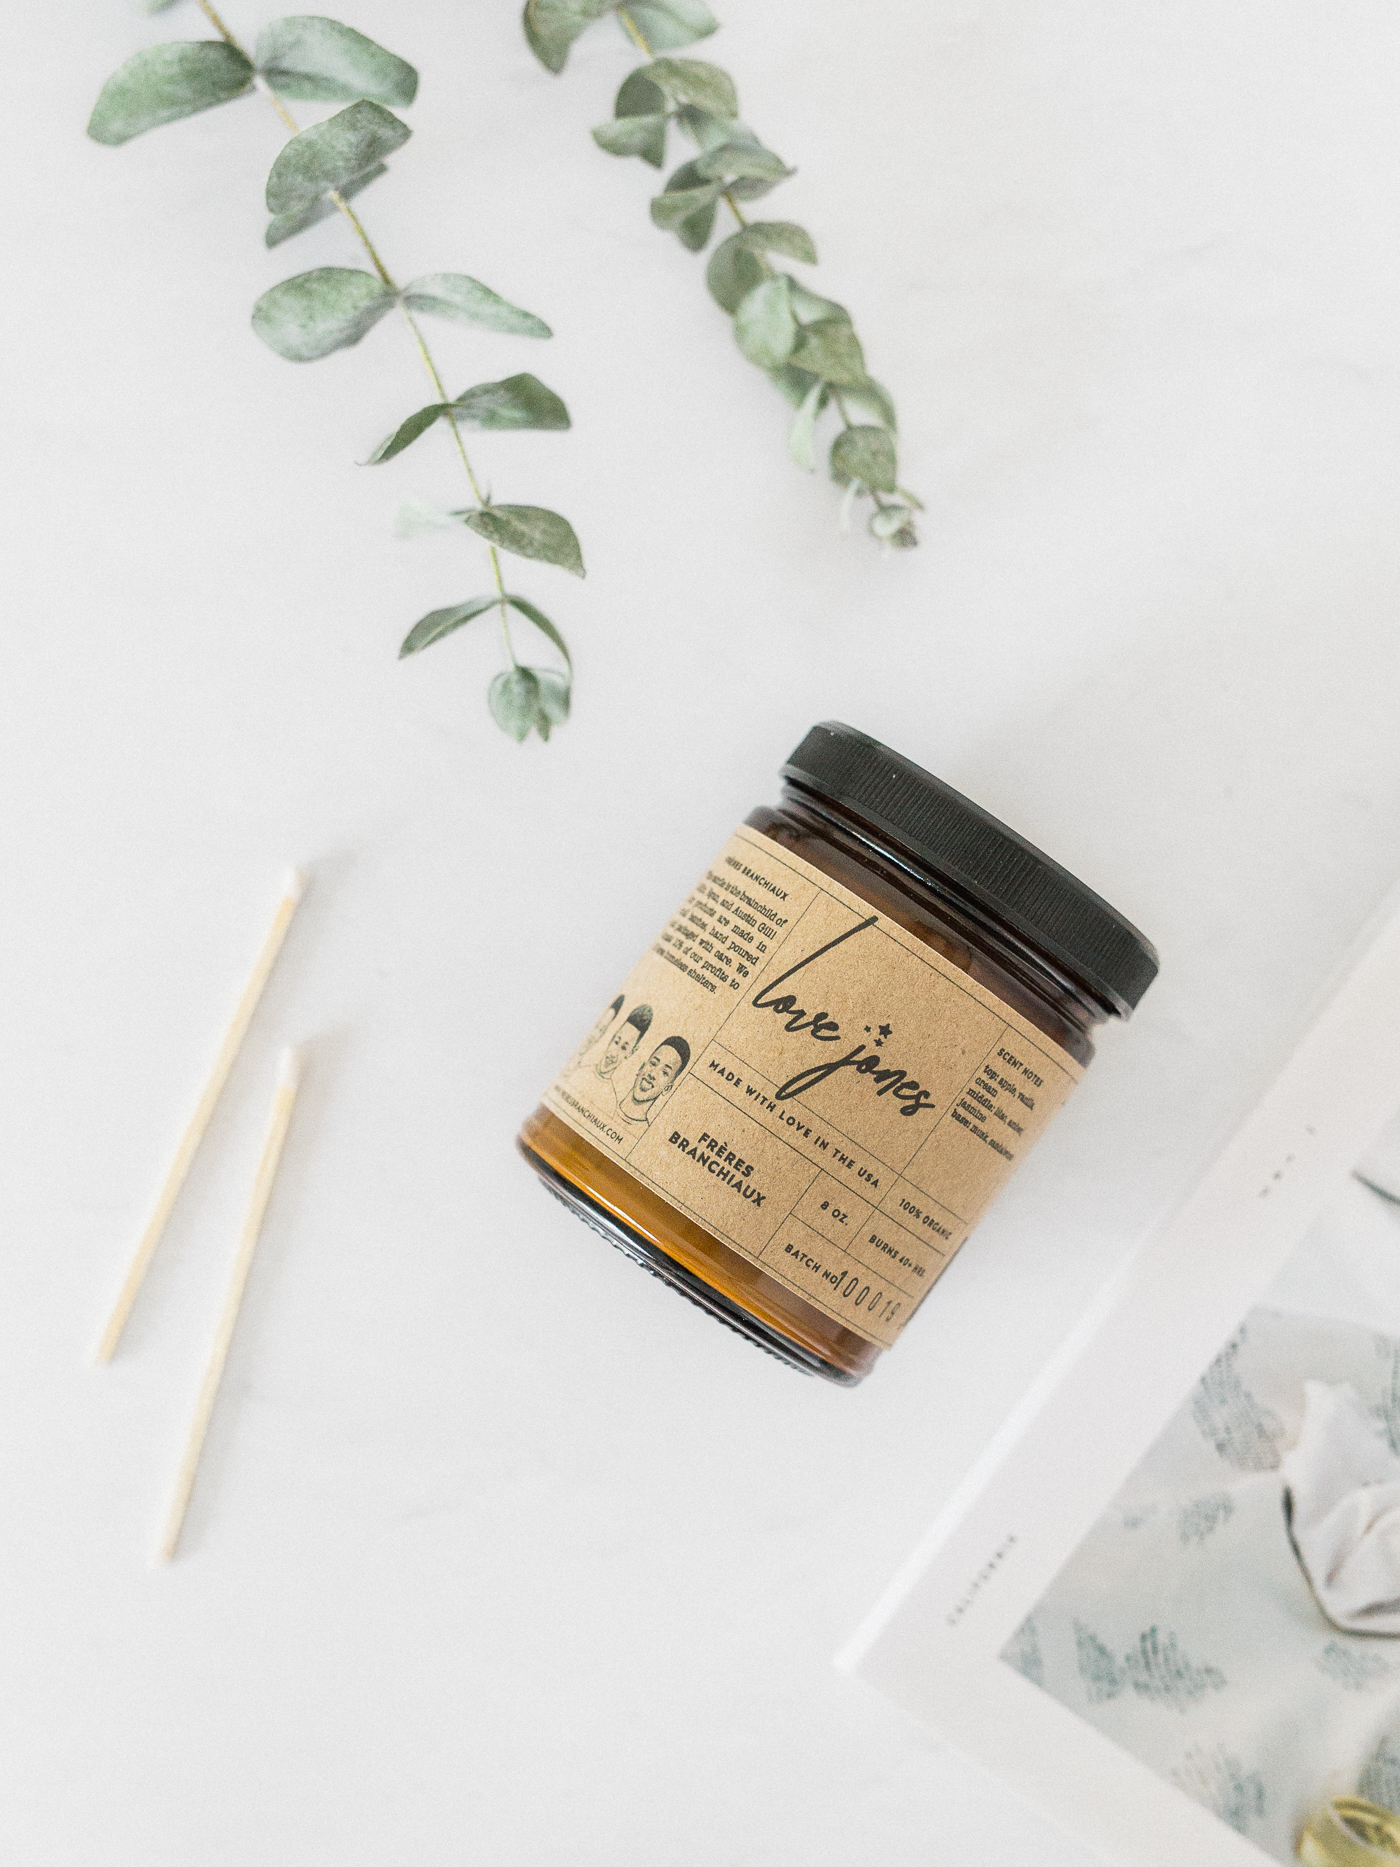 Voyage + Heart Product Photography - Frerés Branchiaux Candle Co - Mail In Product Photography for Brands Worldwide - Organic Soy Wax Candles - DC Makers